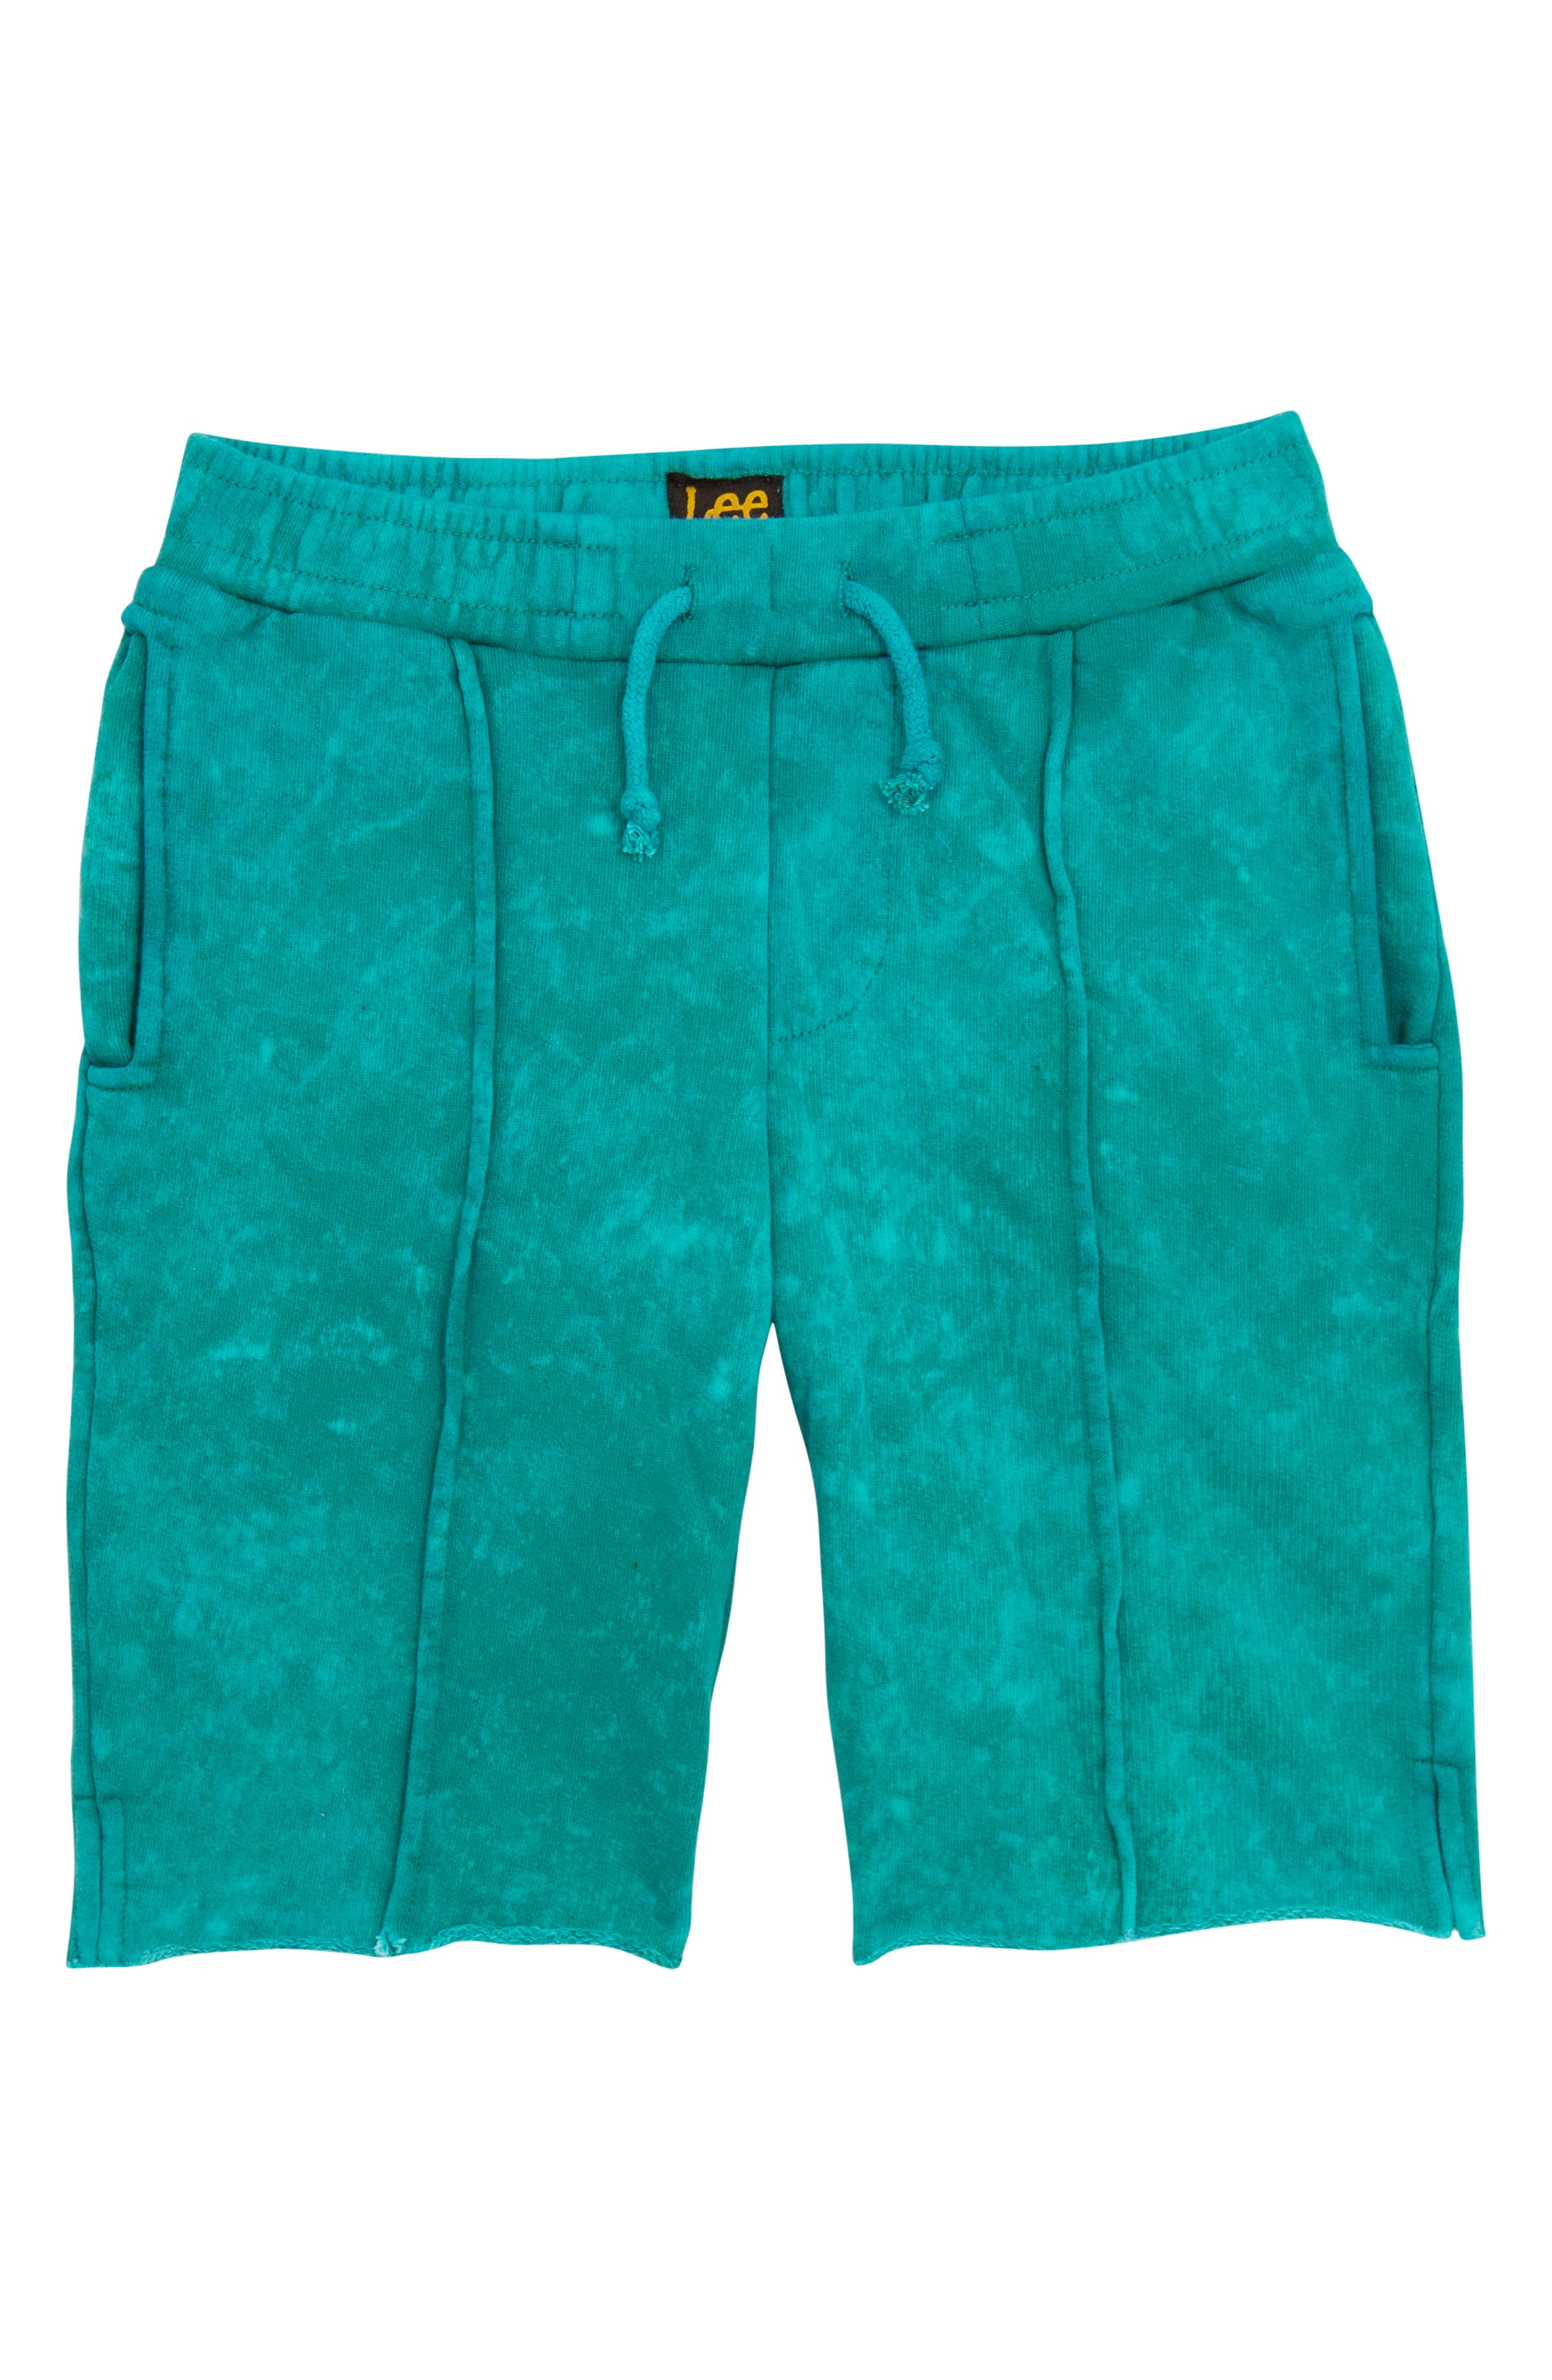 Acid Wash Pull-On Denim Shorts,                         Main,                         color, Turquoise